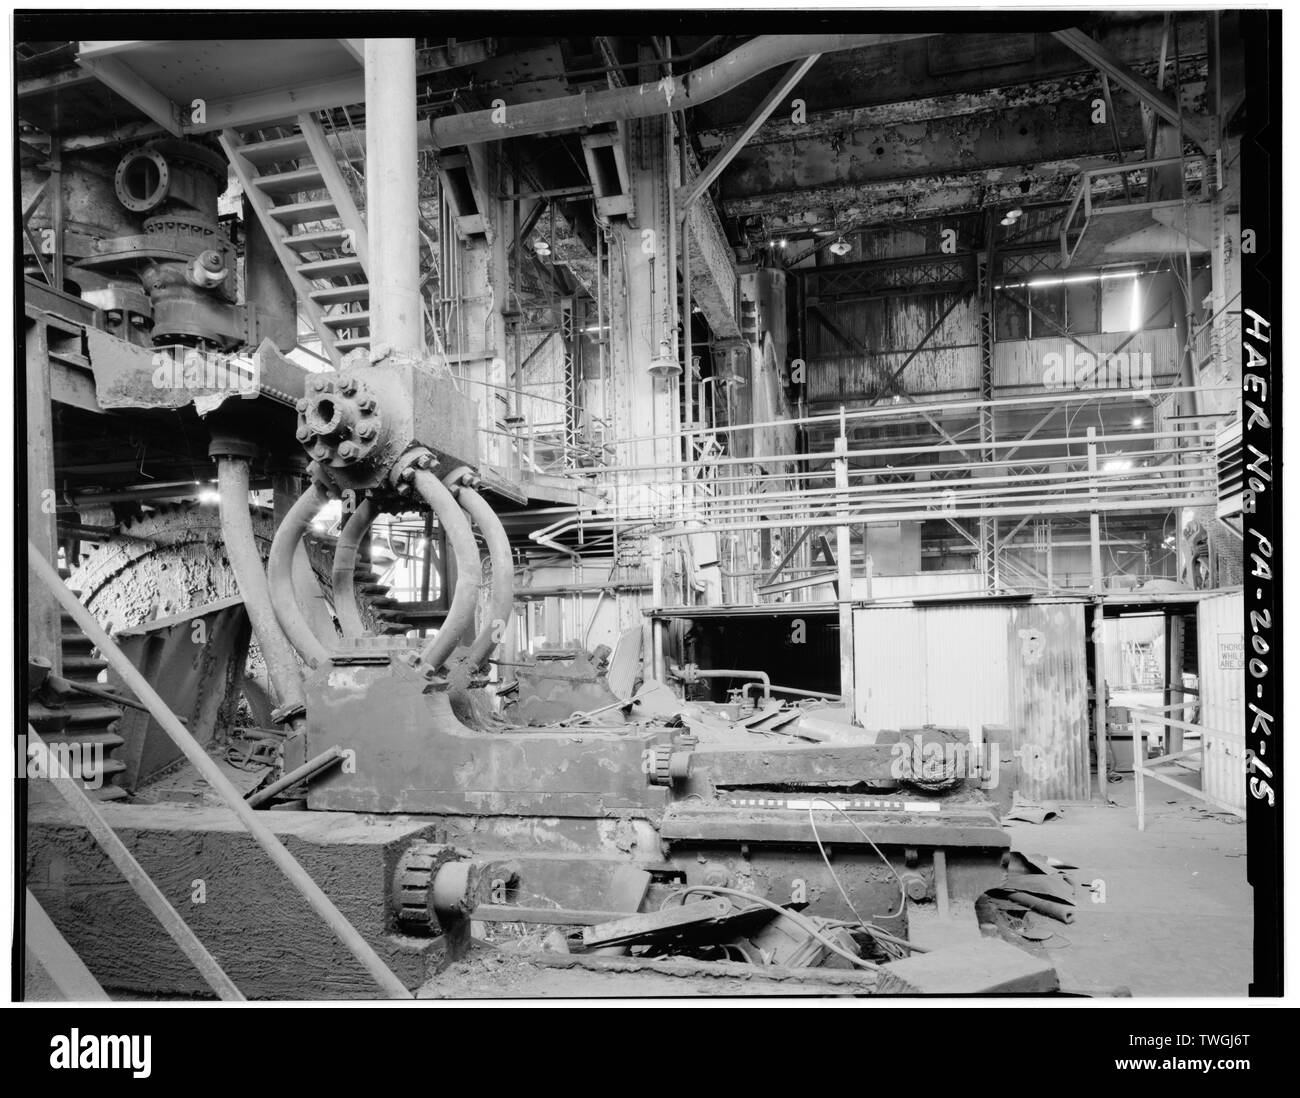 REMAINS OF RECIPROCATING PUMPS ON THE EAST SIDE OF No. 1 PRESS. - U.S. Steel Homestead Works, Press Shop No. 1, Along Monongahela River, Homestead, Allegheny County, PA; U.S. Steel Corporation; Bethlehem Steel Company; United Engineering; Carnegie, Phipps and Company; Davy Brothers; Joseph Whitworth and Company; Fritz, John; Davenport, Russell; Mesta Machine Company; Stupich, Martin, photographer - Stock Image